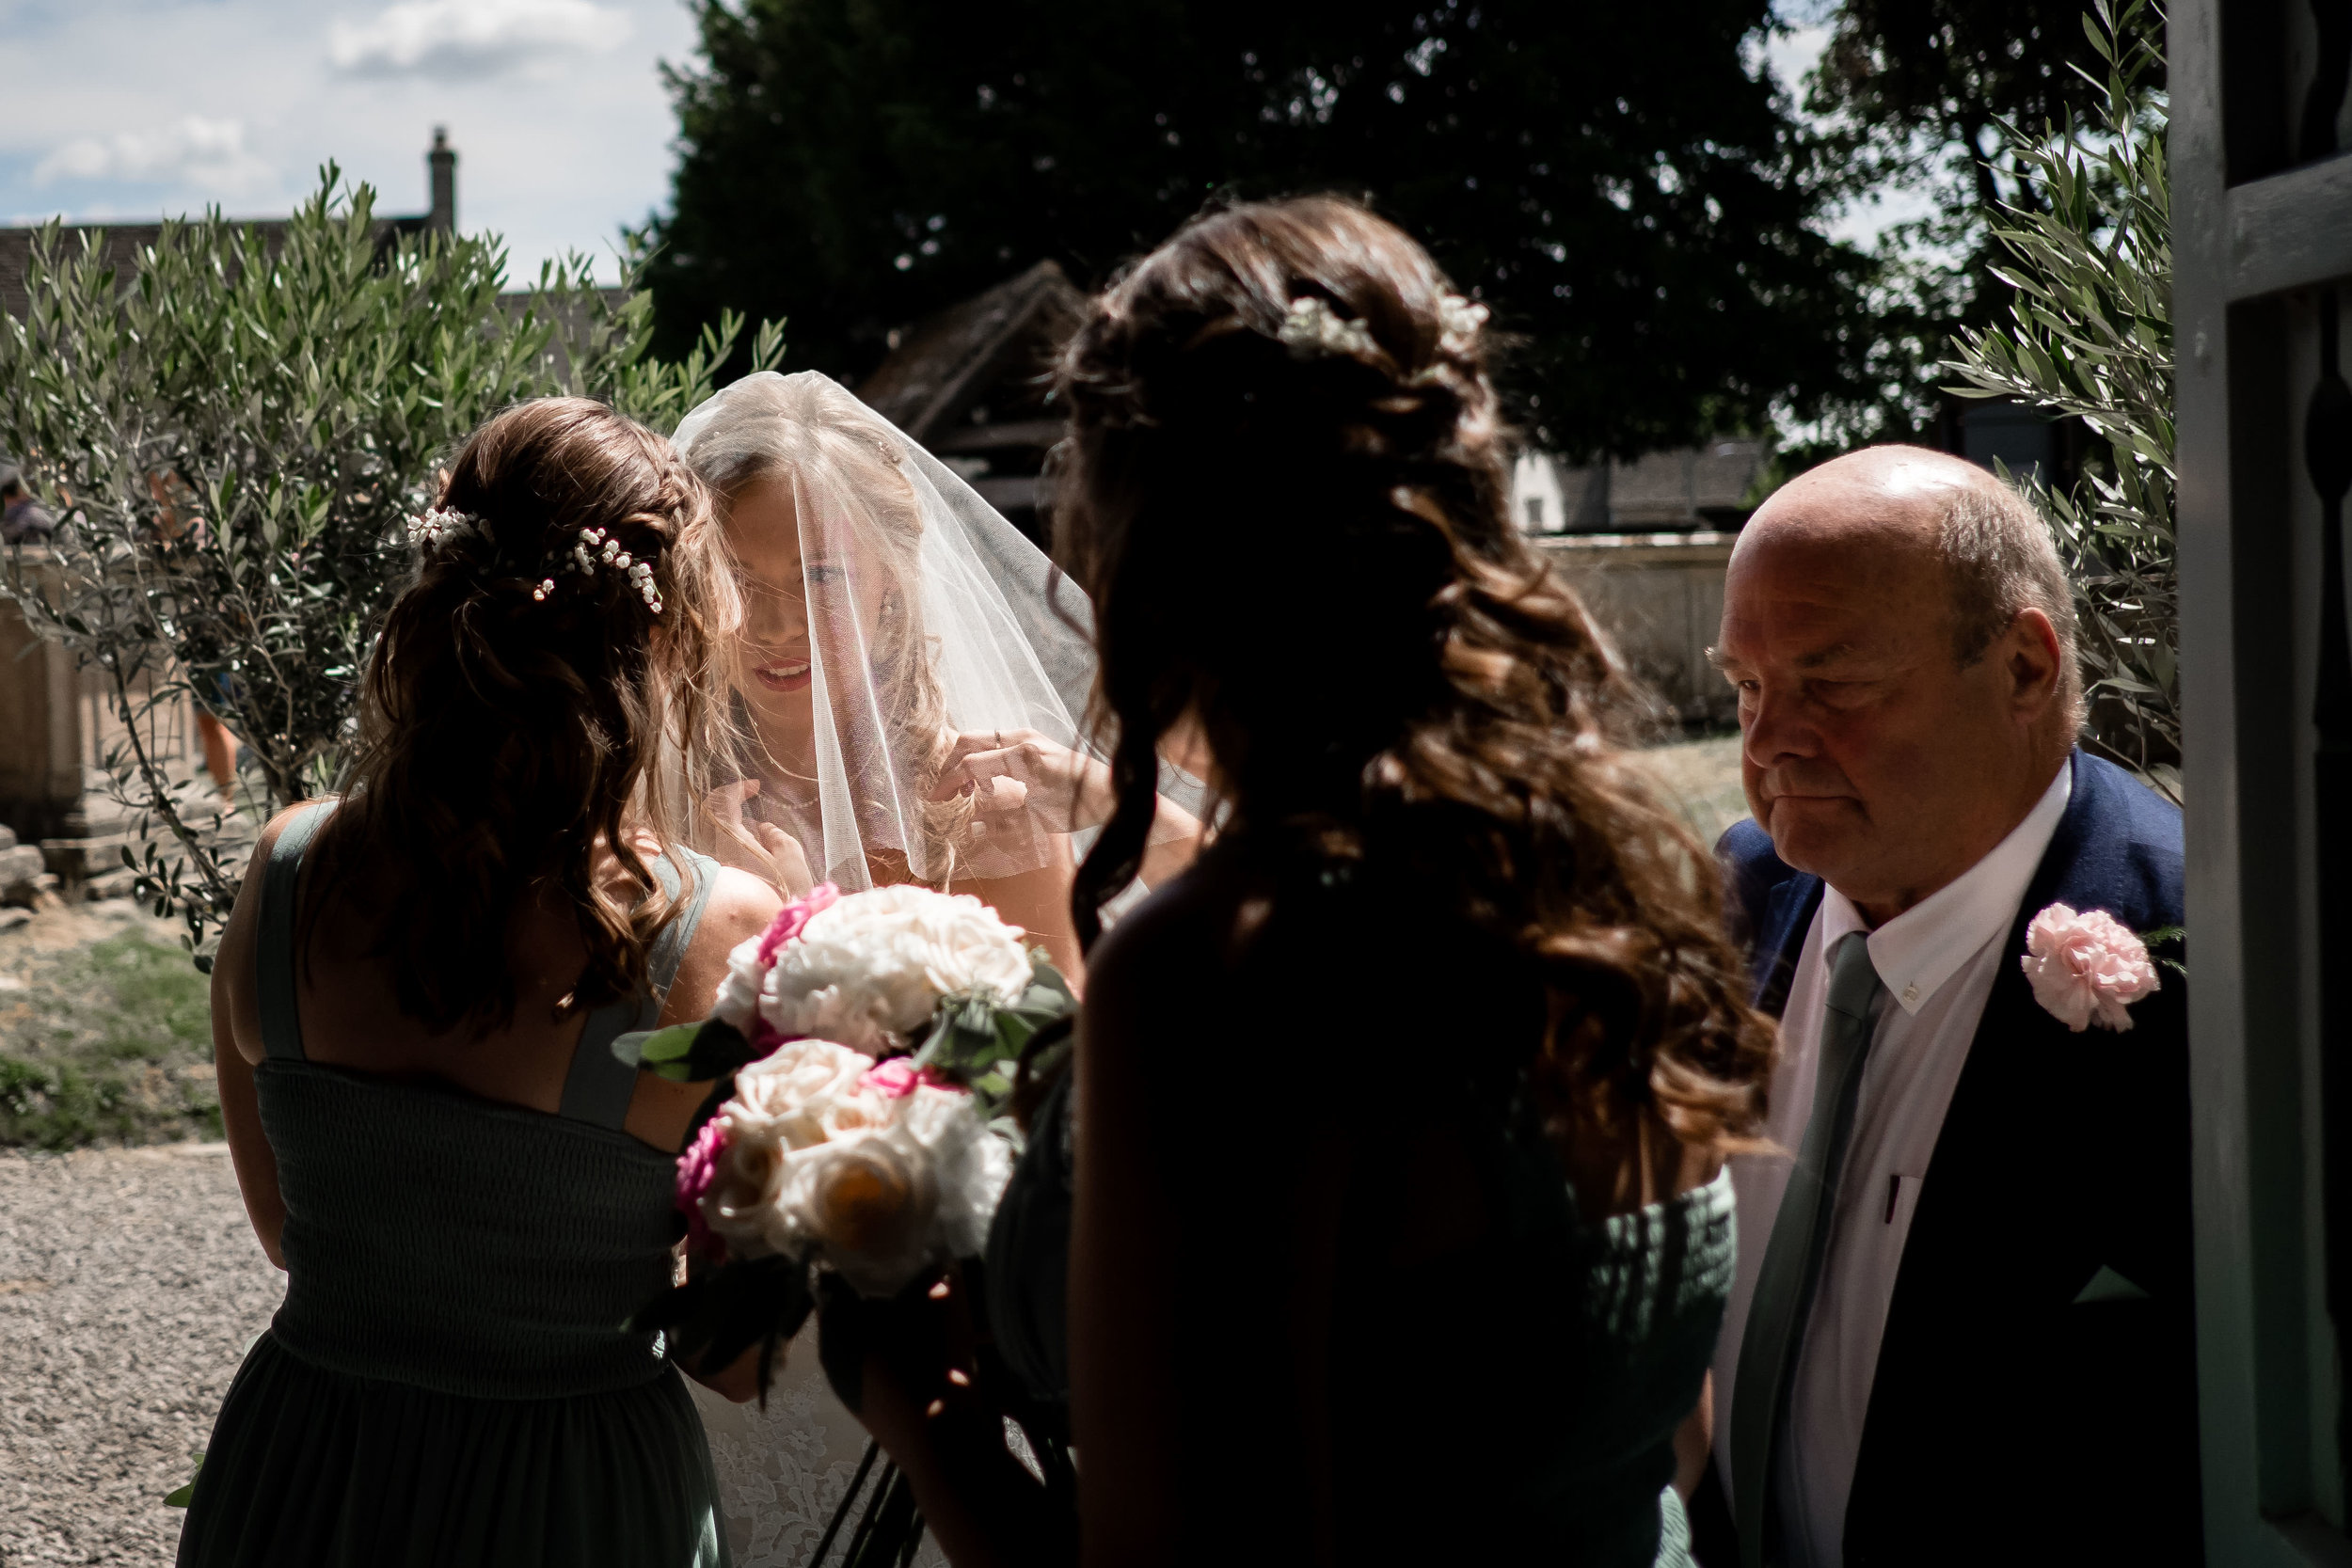 C&D - Wiltshire weddings (40 of 243).jpg